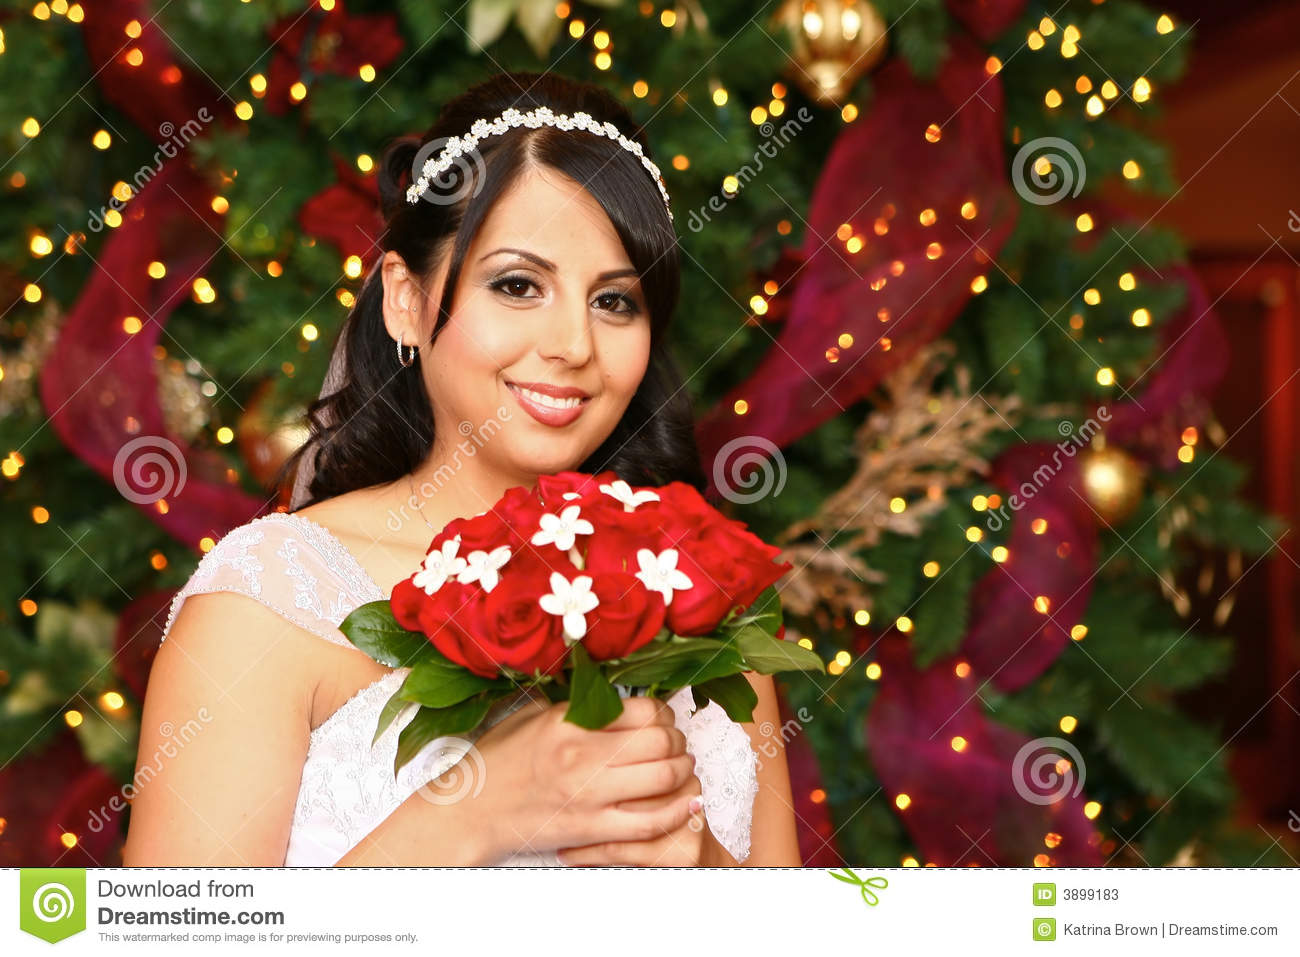 A Christmas Bride.Christmas Bride Stock Image Image Of Married Indian 3899183